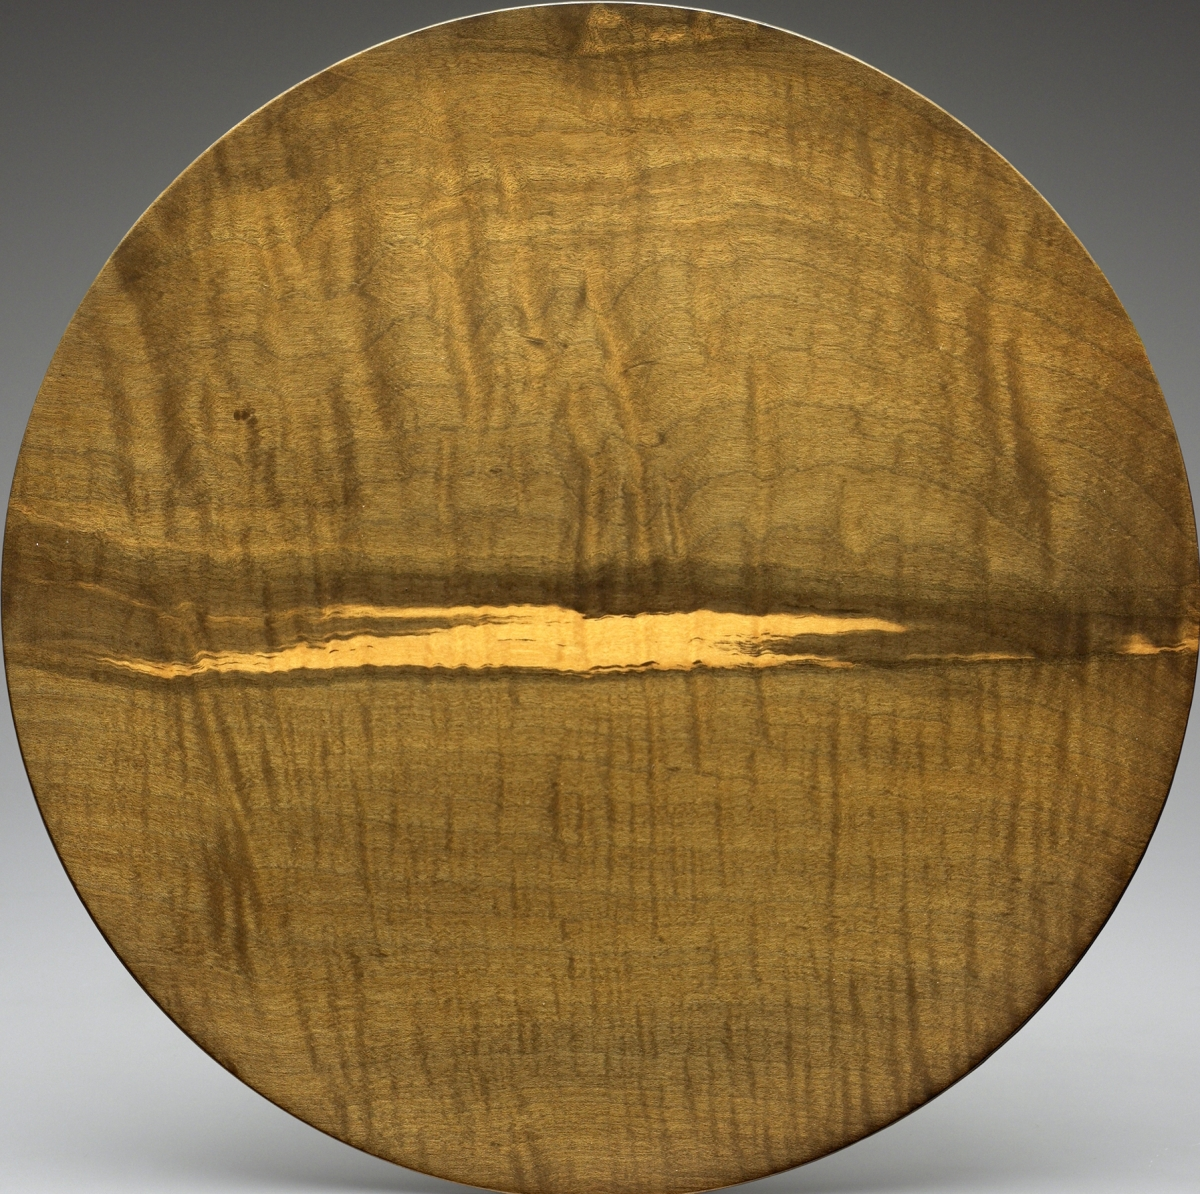 "The Wood Turner's ArtPlate by Bob Stocksdale, 1952 or 1953. English harewood. Mabel Brady Garvan Collection, by exchange, and a gift from Stephen S. Lash, BA,1962, in honor of Ruth and David Waterbury, BA, 1958.In addition to manufactured objects, we also collect contemporary handcrafted work. This plate by Bob Stocksdale represents a concerted effort in that regard since it was part of the exhibition ""Wood Turning in North America Since 1930"" that we organized with the Wood Turning Center (now the Center for Art in Wood) in Philadelphia. A goal of the show was to establish the canon in this medium. This plate by Bob Stocksdale has an important place in that canon. It is an early example of Stocksdale's ability to capitalize on the features of a special piece of wood, in this case English harewood with a spectacular streak of color variation through its center, creating an unusually painterly composition. Its additional importance is that it was shown in the pioneering Craftmen's Educational Council exhibition ""Designer-Craftsmen, U.S.A."" 1953. An endowment established by Ruth and David Waterbury enables us to acquire work in this field."